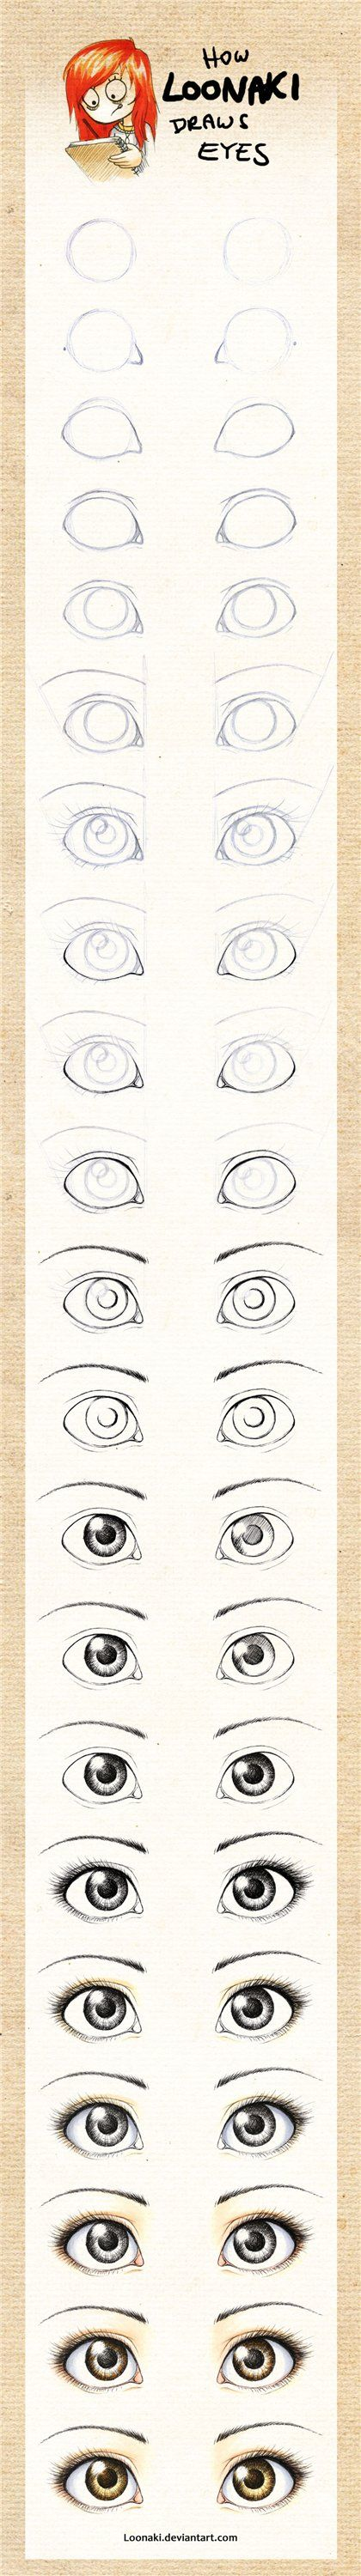 To draw eyes.